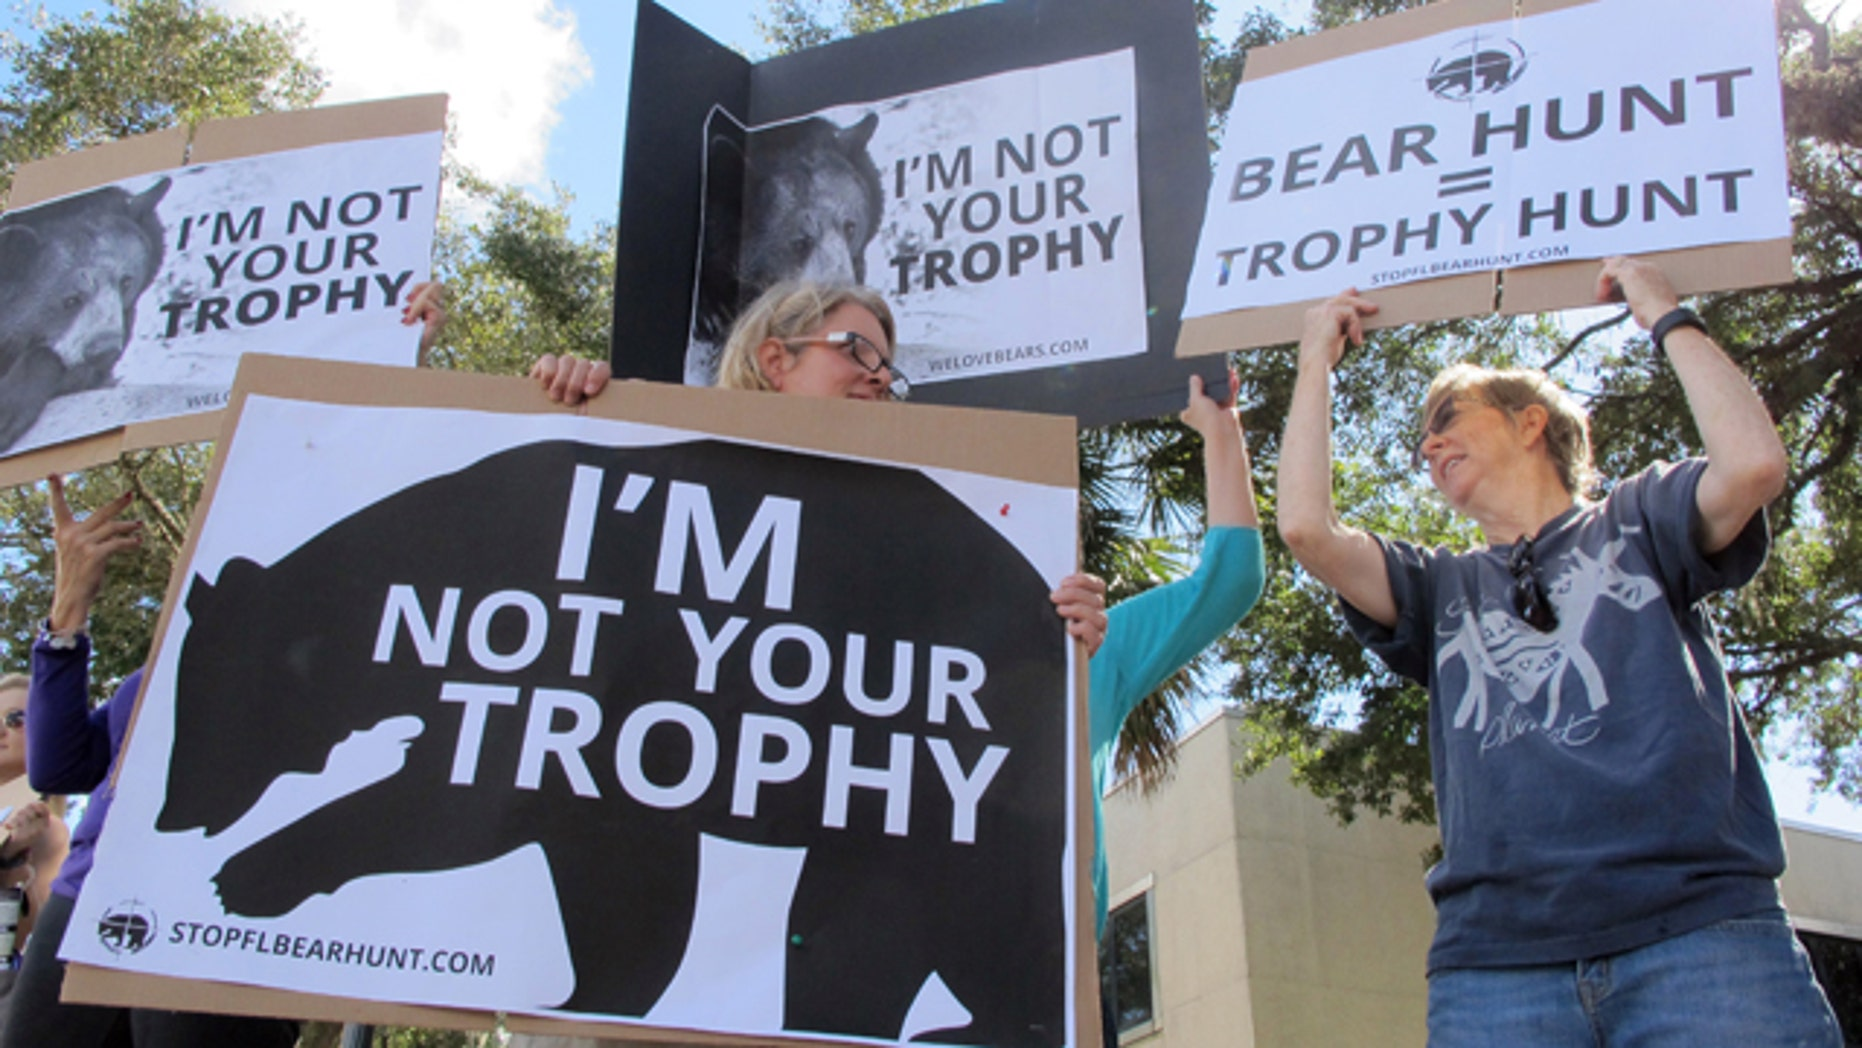 Oct. 23, 2015: Protesters opposed to bear hunting in Florida demonstrate on a street in downtown Gainesville. (AP Photo/Jason H. Dearen)